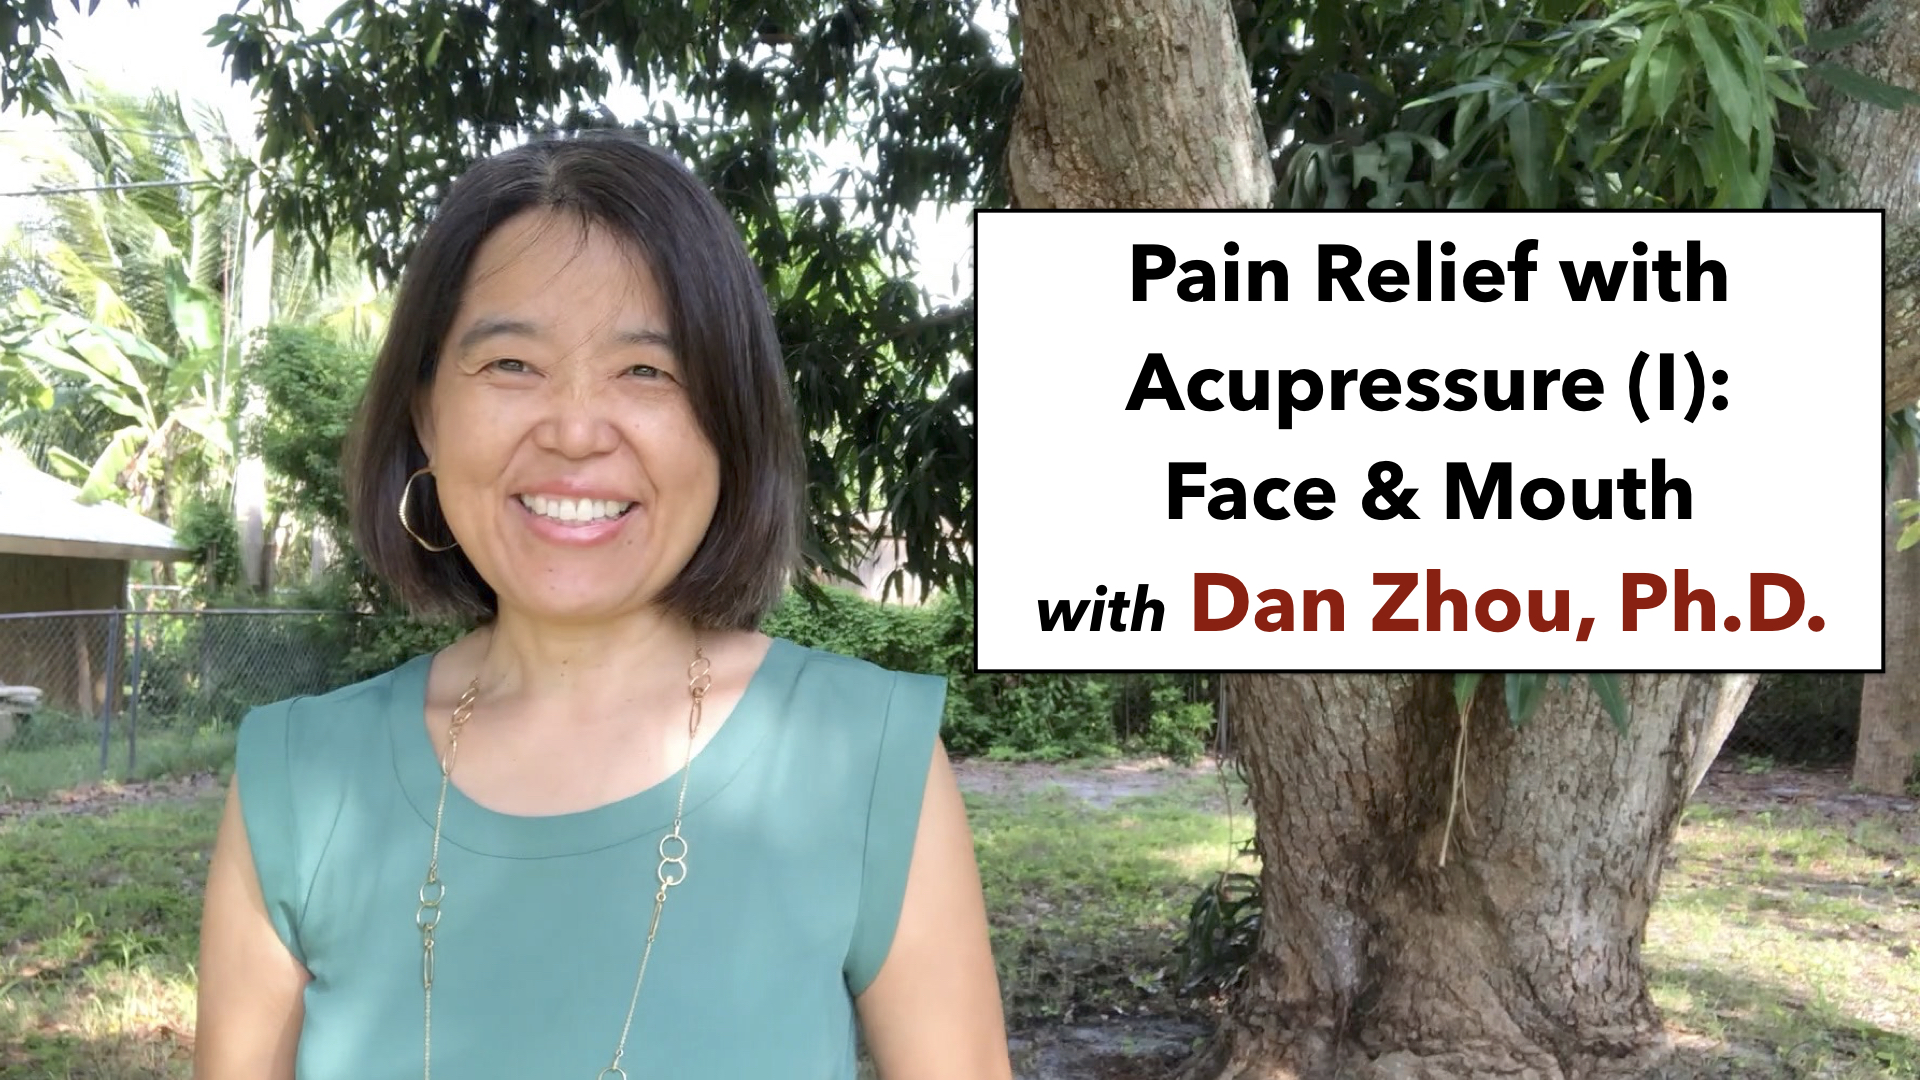 How to reduce pain with acupressure for headache